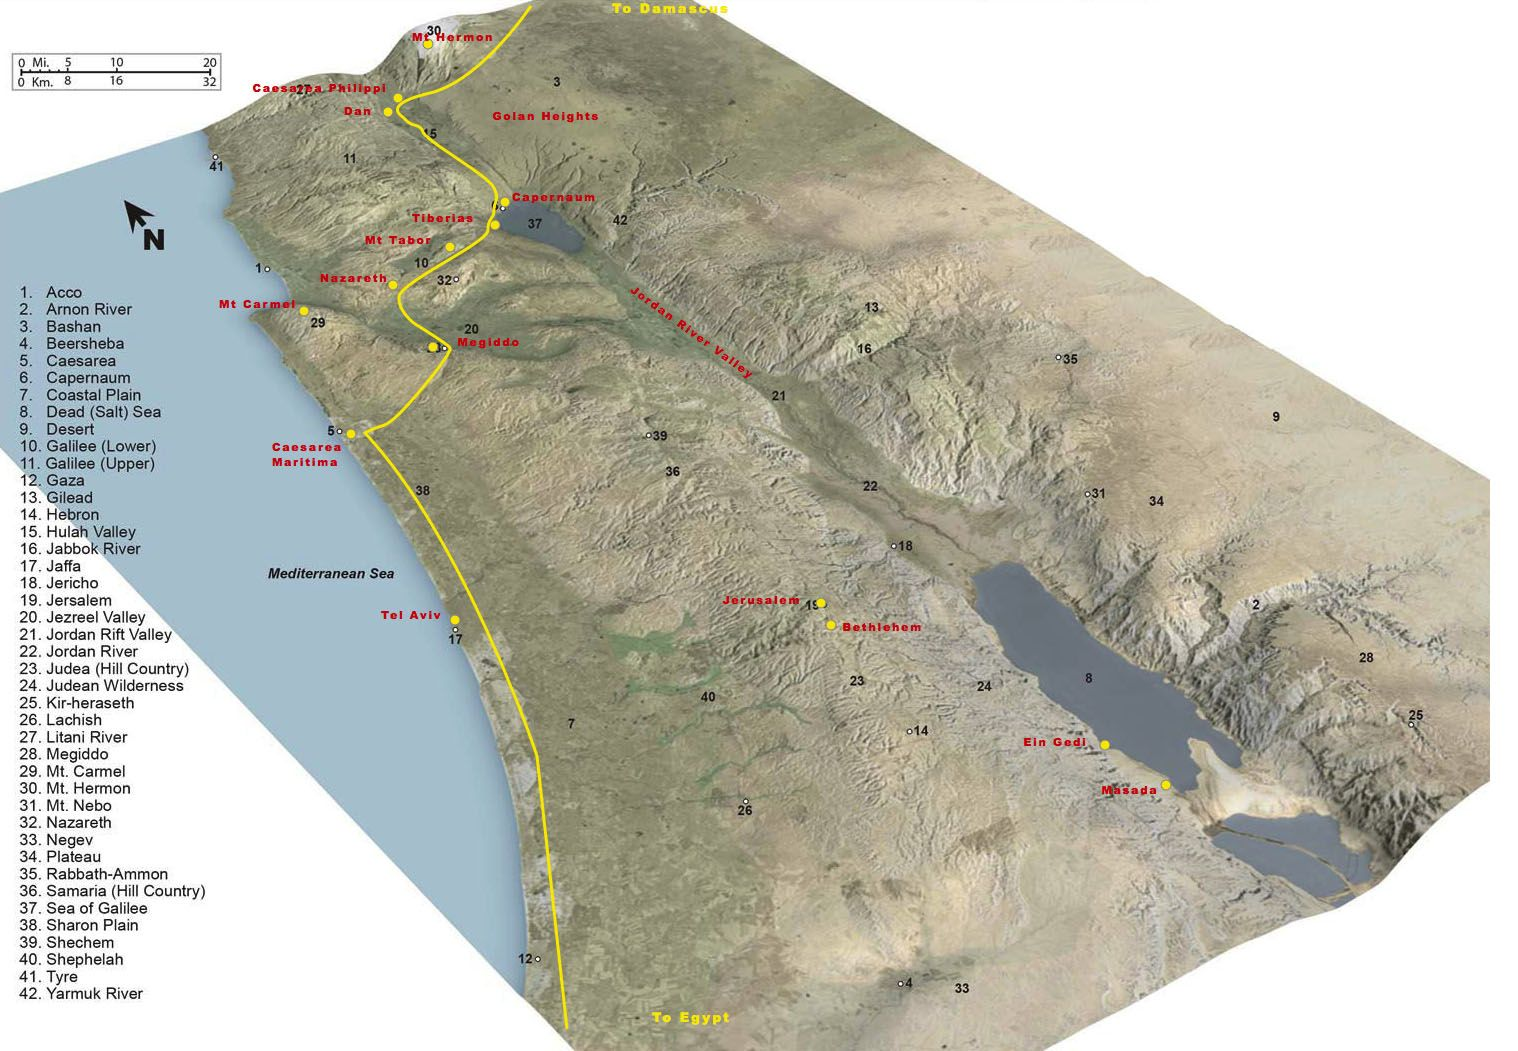 Israel Topograhpic Map